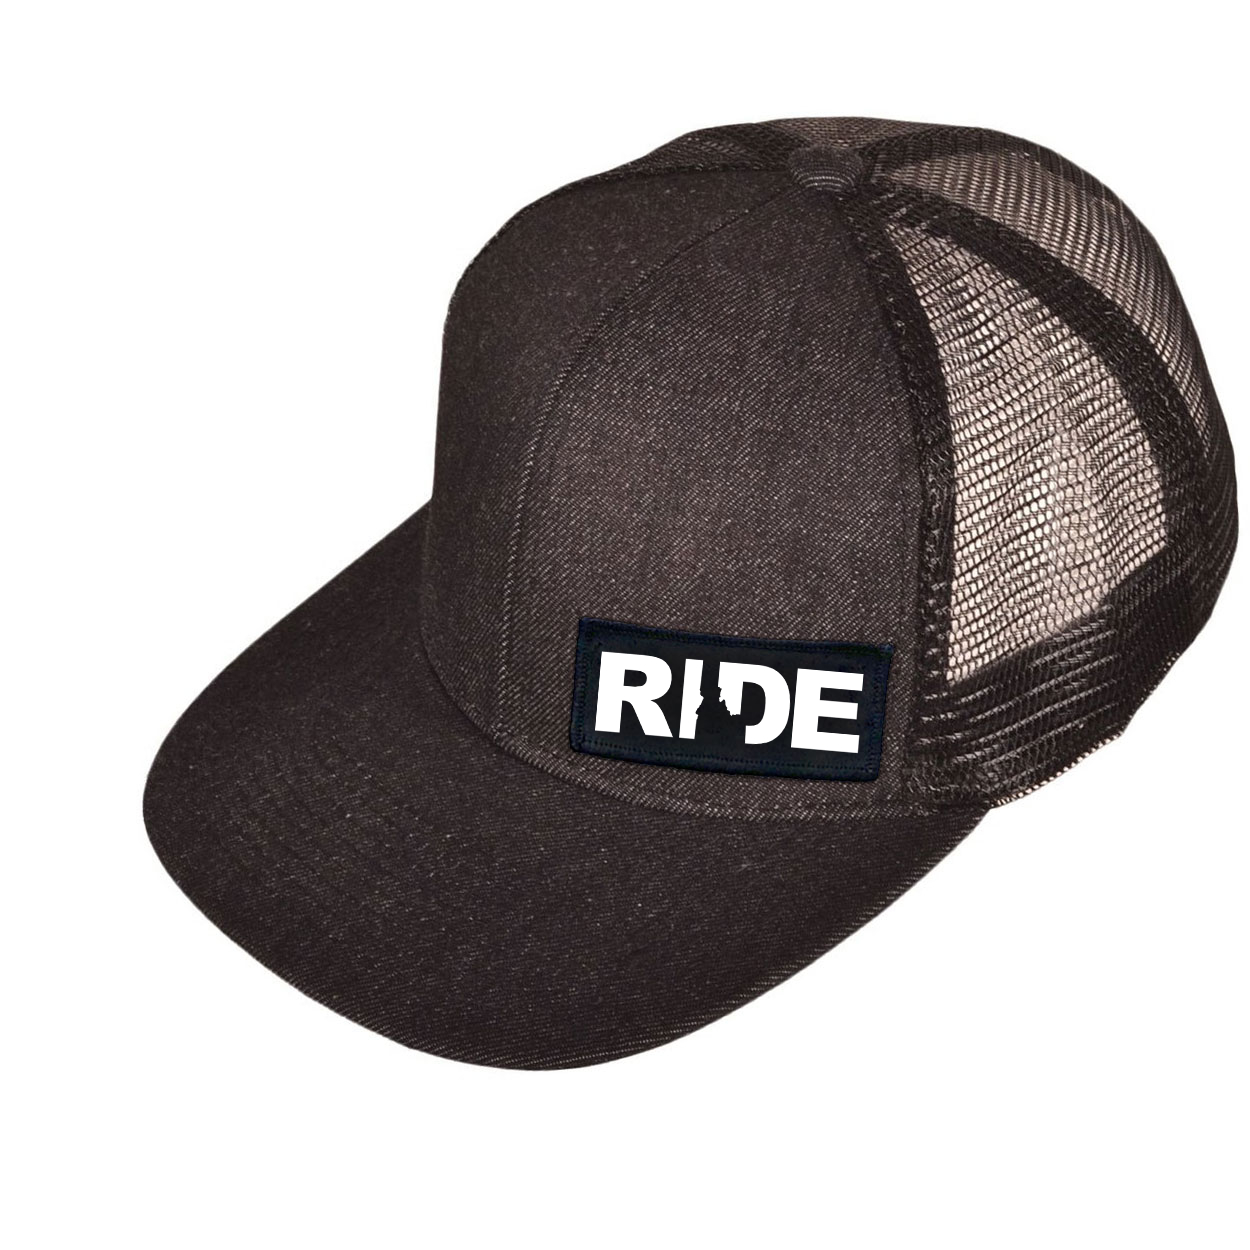 Ride Idaho Night Out Woven Patch Snapback Flat Brim Hat Black Denim (White Logo)